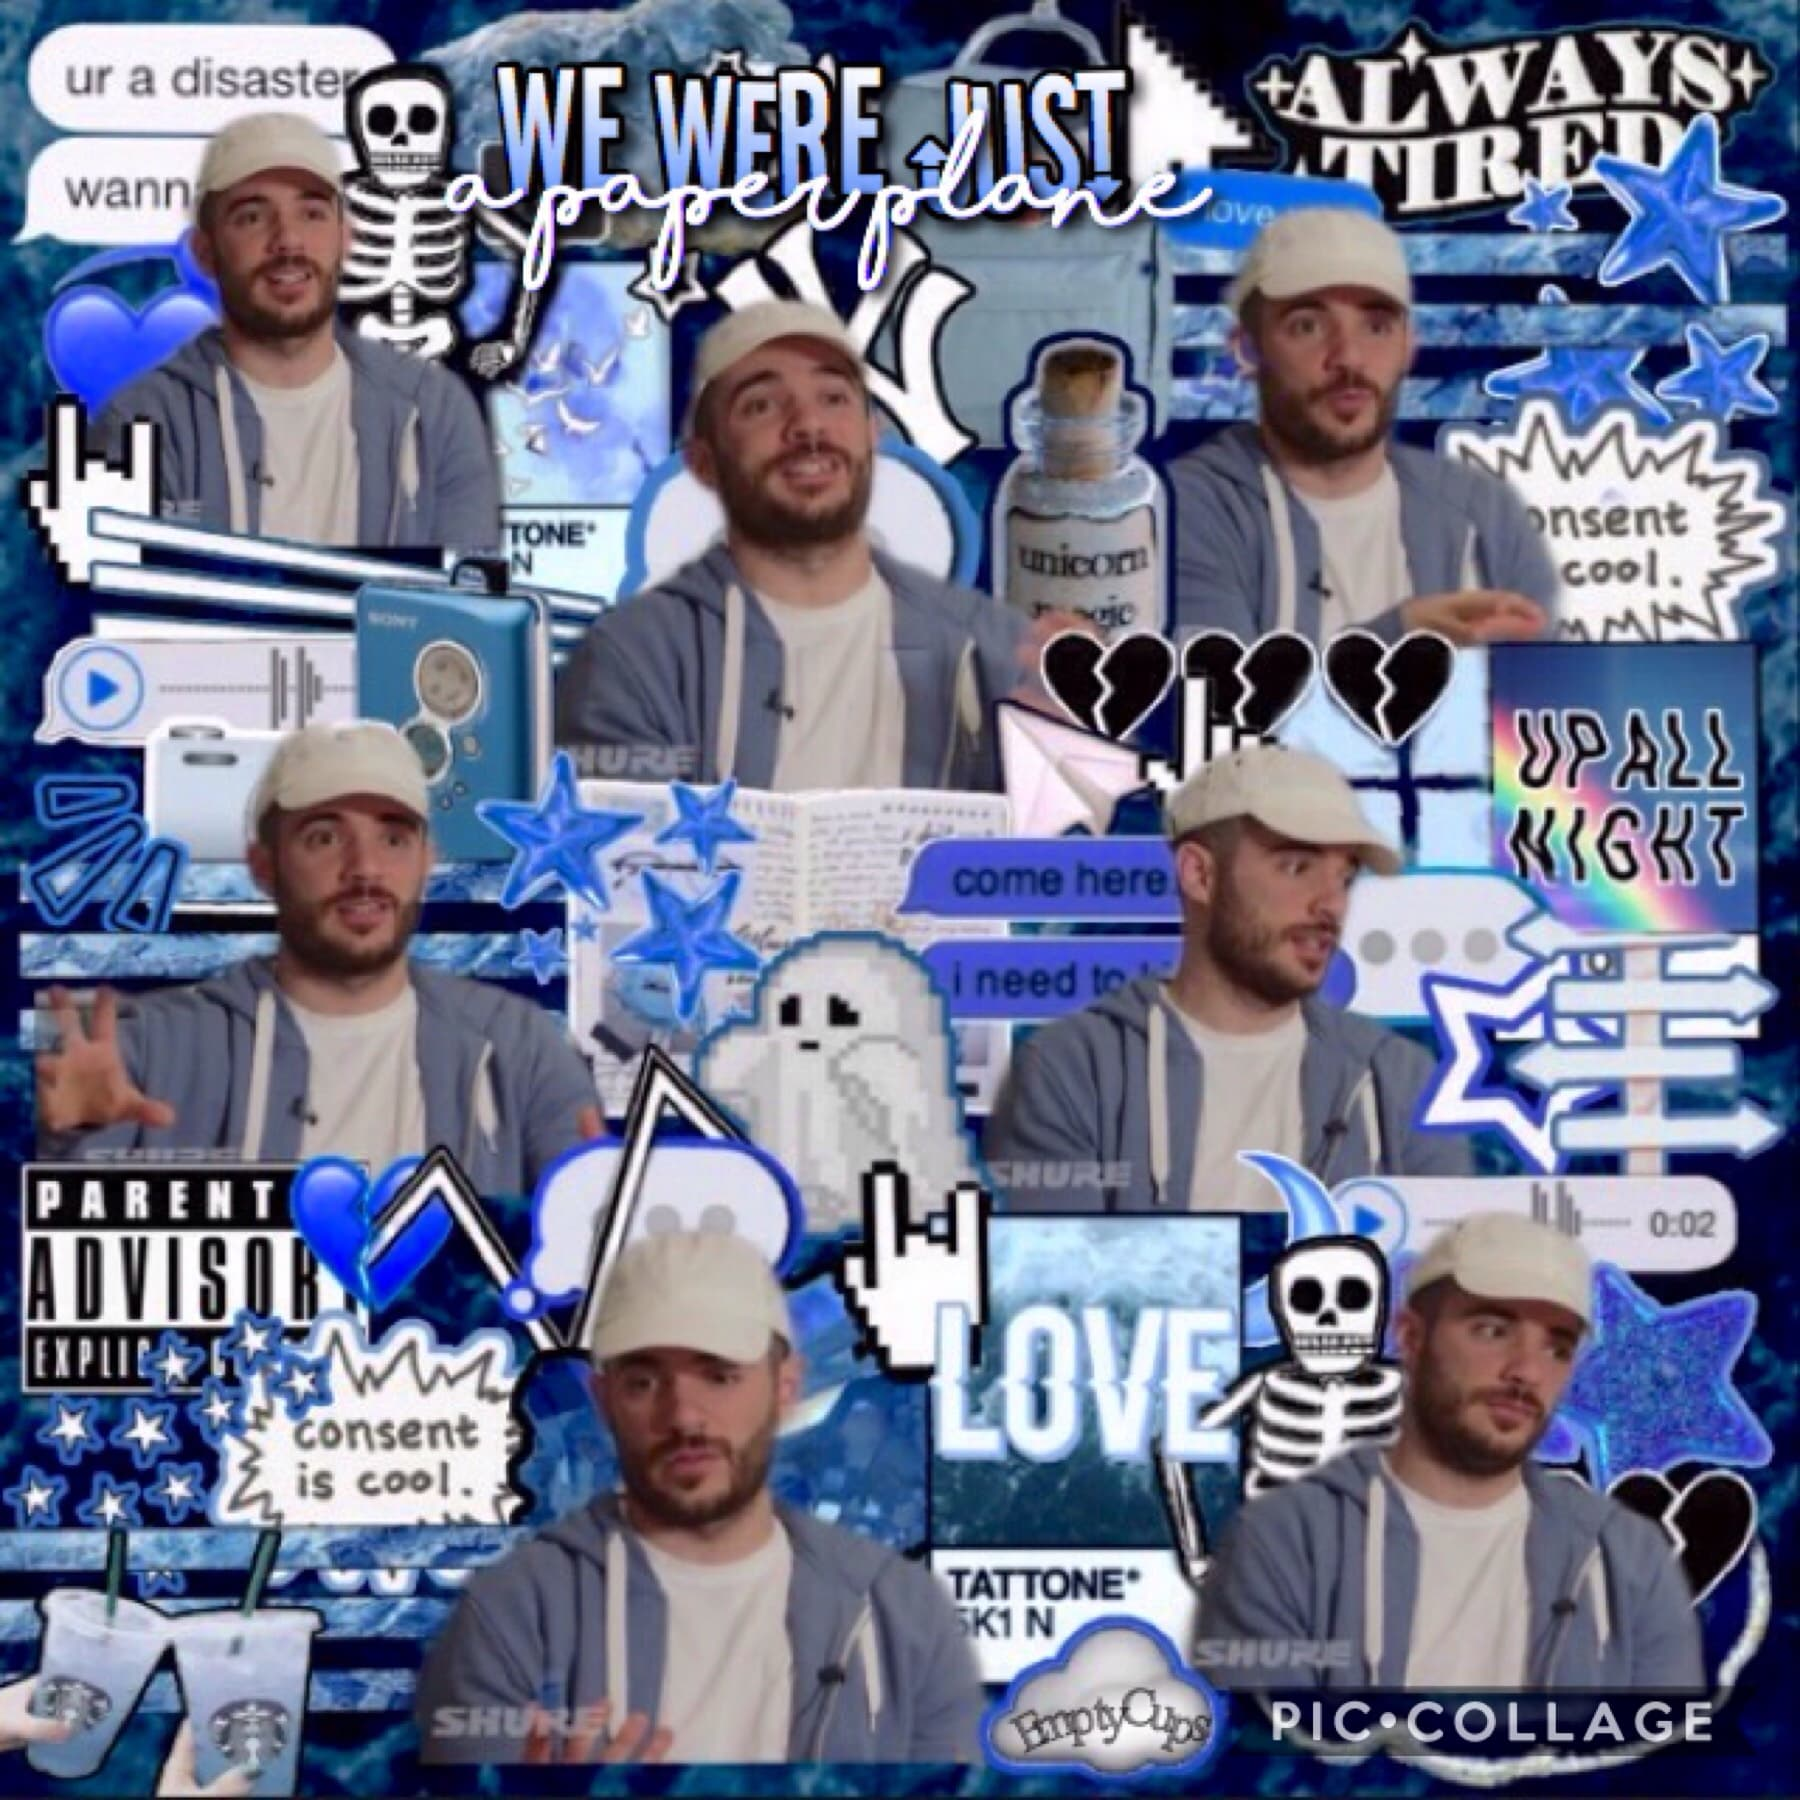 ||10-25-18|| 💗🎉 Ok so first today's my birthday! Second, first edit back! Third, meet my idol Jon Bellion 💕💕  /Love Came Like A Hurricane and We Were Just A Paper Plane/ Song OTC: Paper Plane Artist: Jon Bellion 💕💞💖